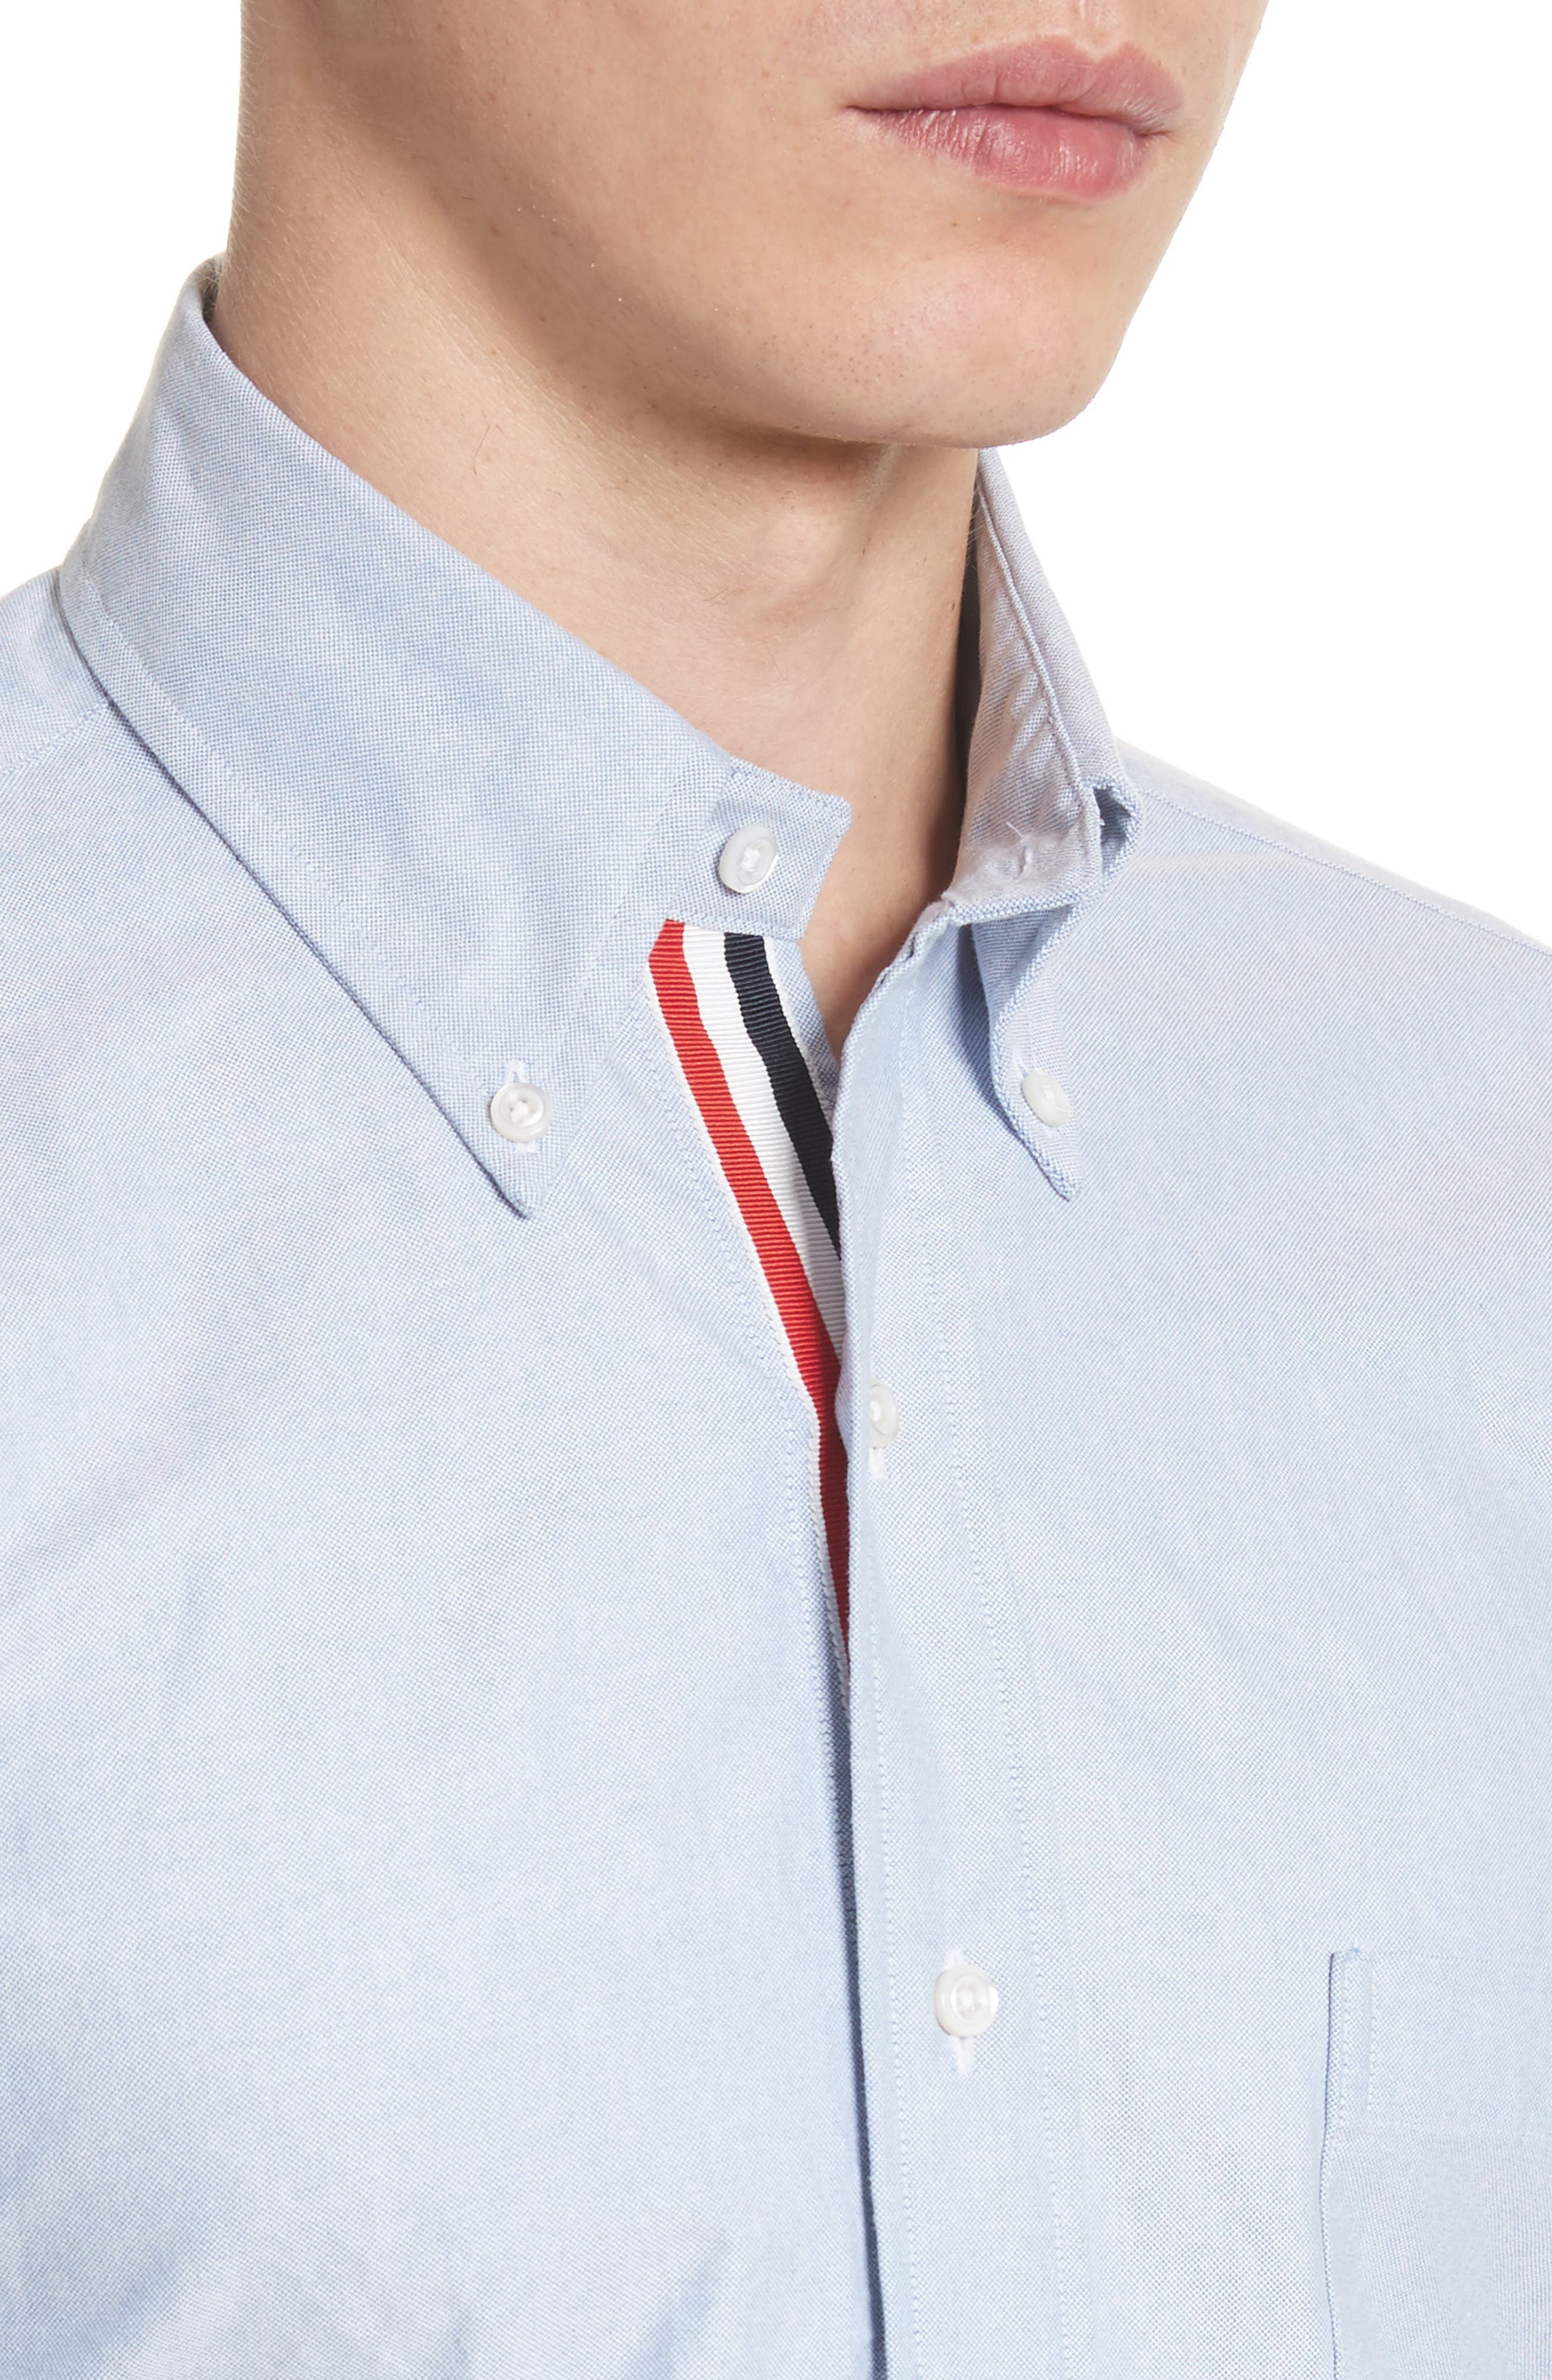 Extra Trim Fit Oxford Shirt with Grosgrain Trim,                             Alternate thumbnail 2, color,                             Light Blue